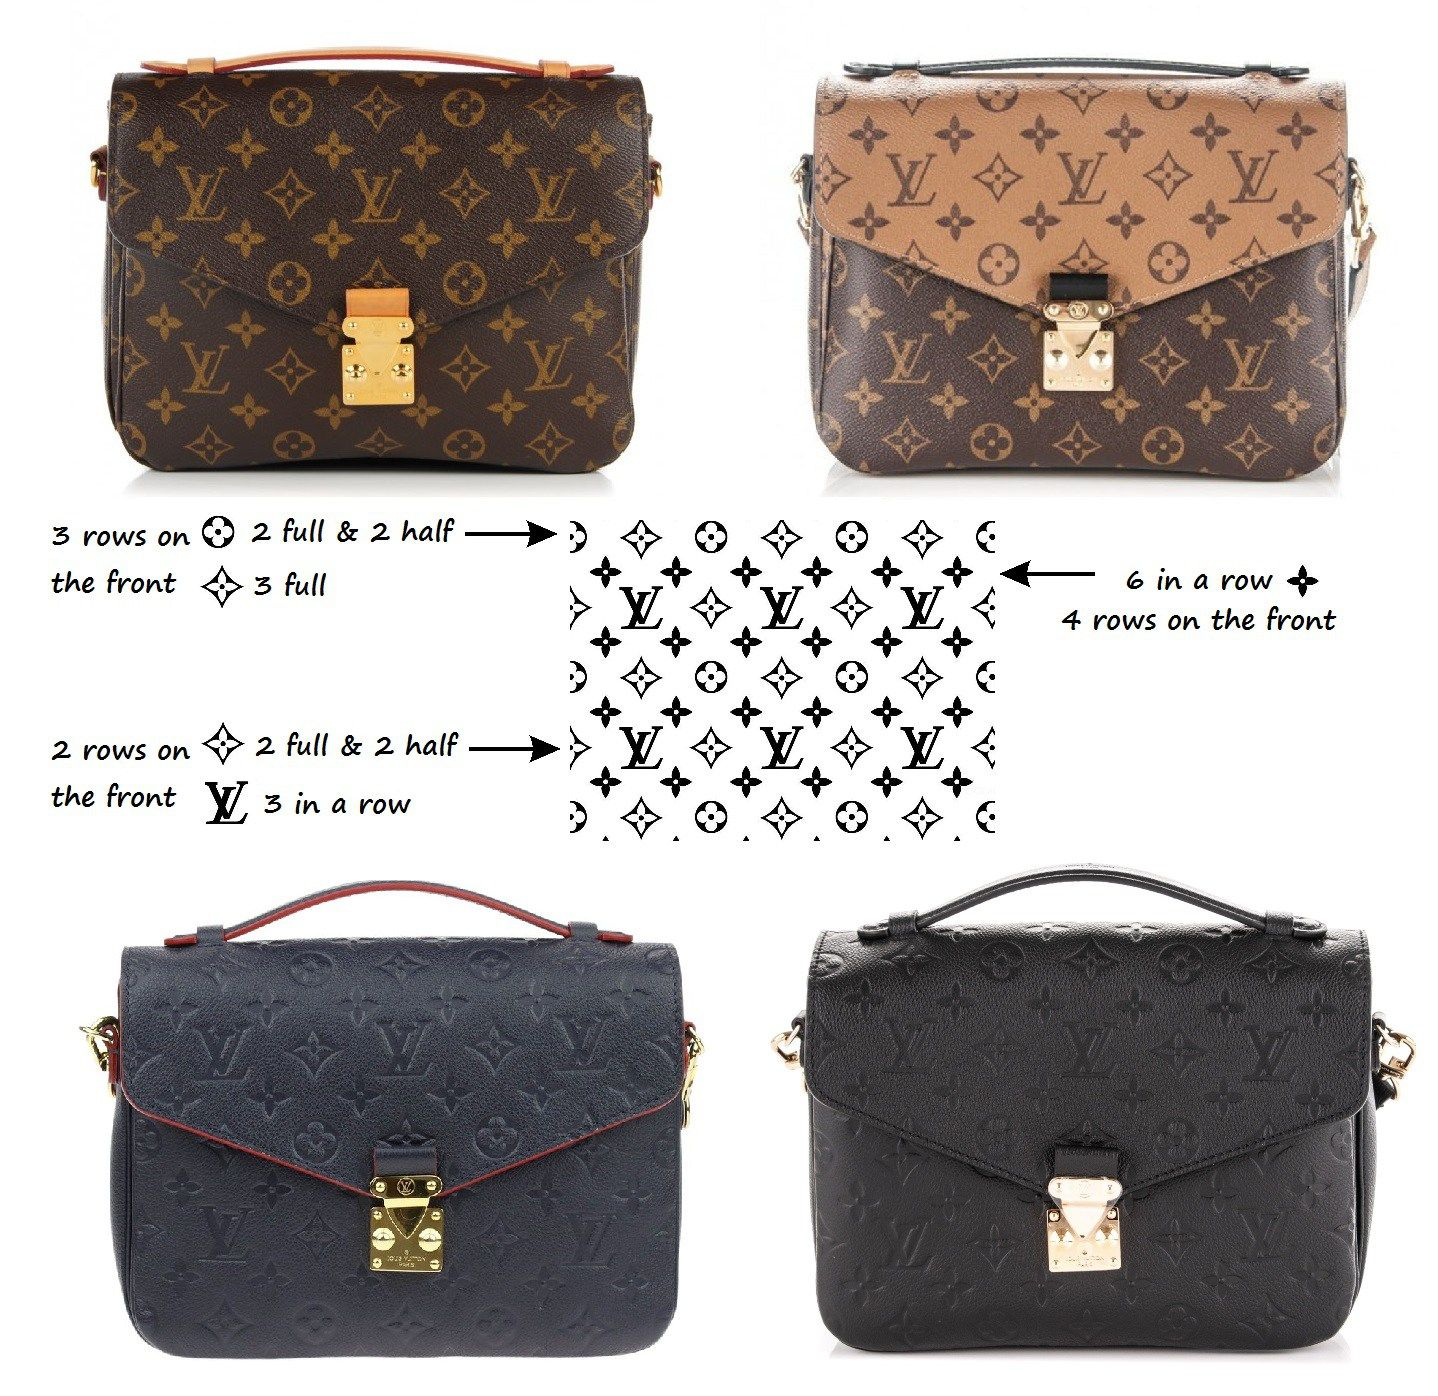 How To Spot A Fake And Authentic Louis Vuitton Bag Love >> How To Spot A Fake Louis Vuitton Pochette Metis A Detailed